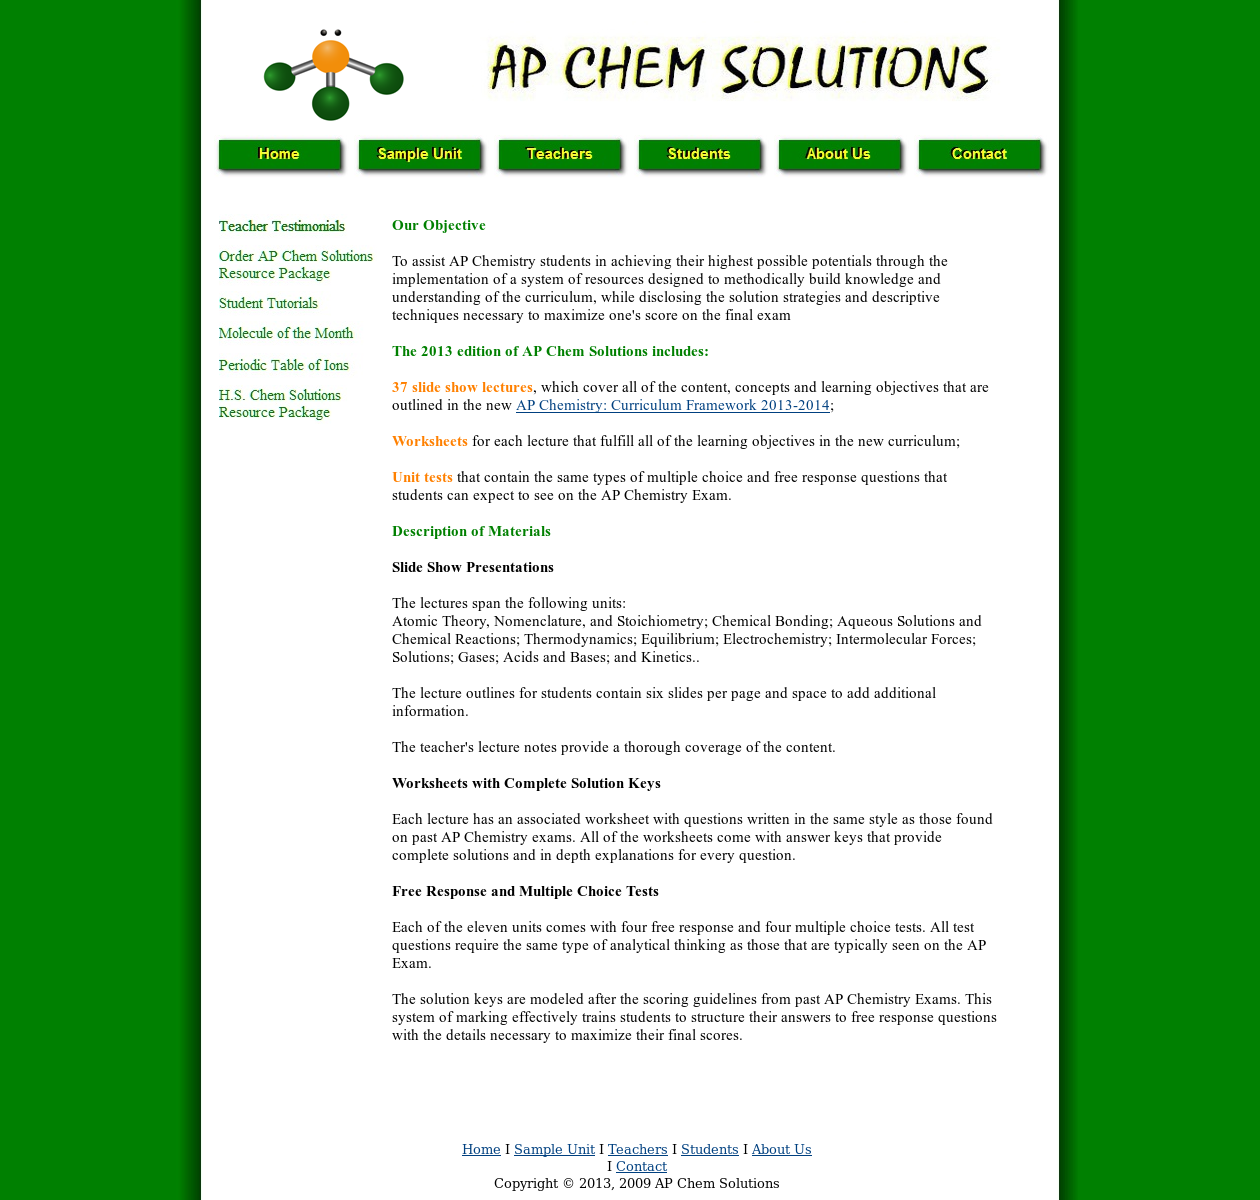 Ap Chem Solutions Competitors, Revenue and Employees - Owler